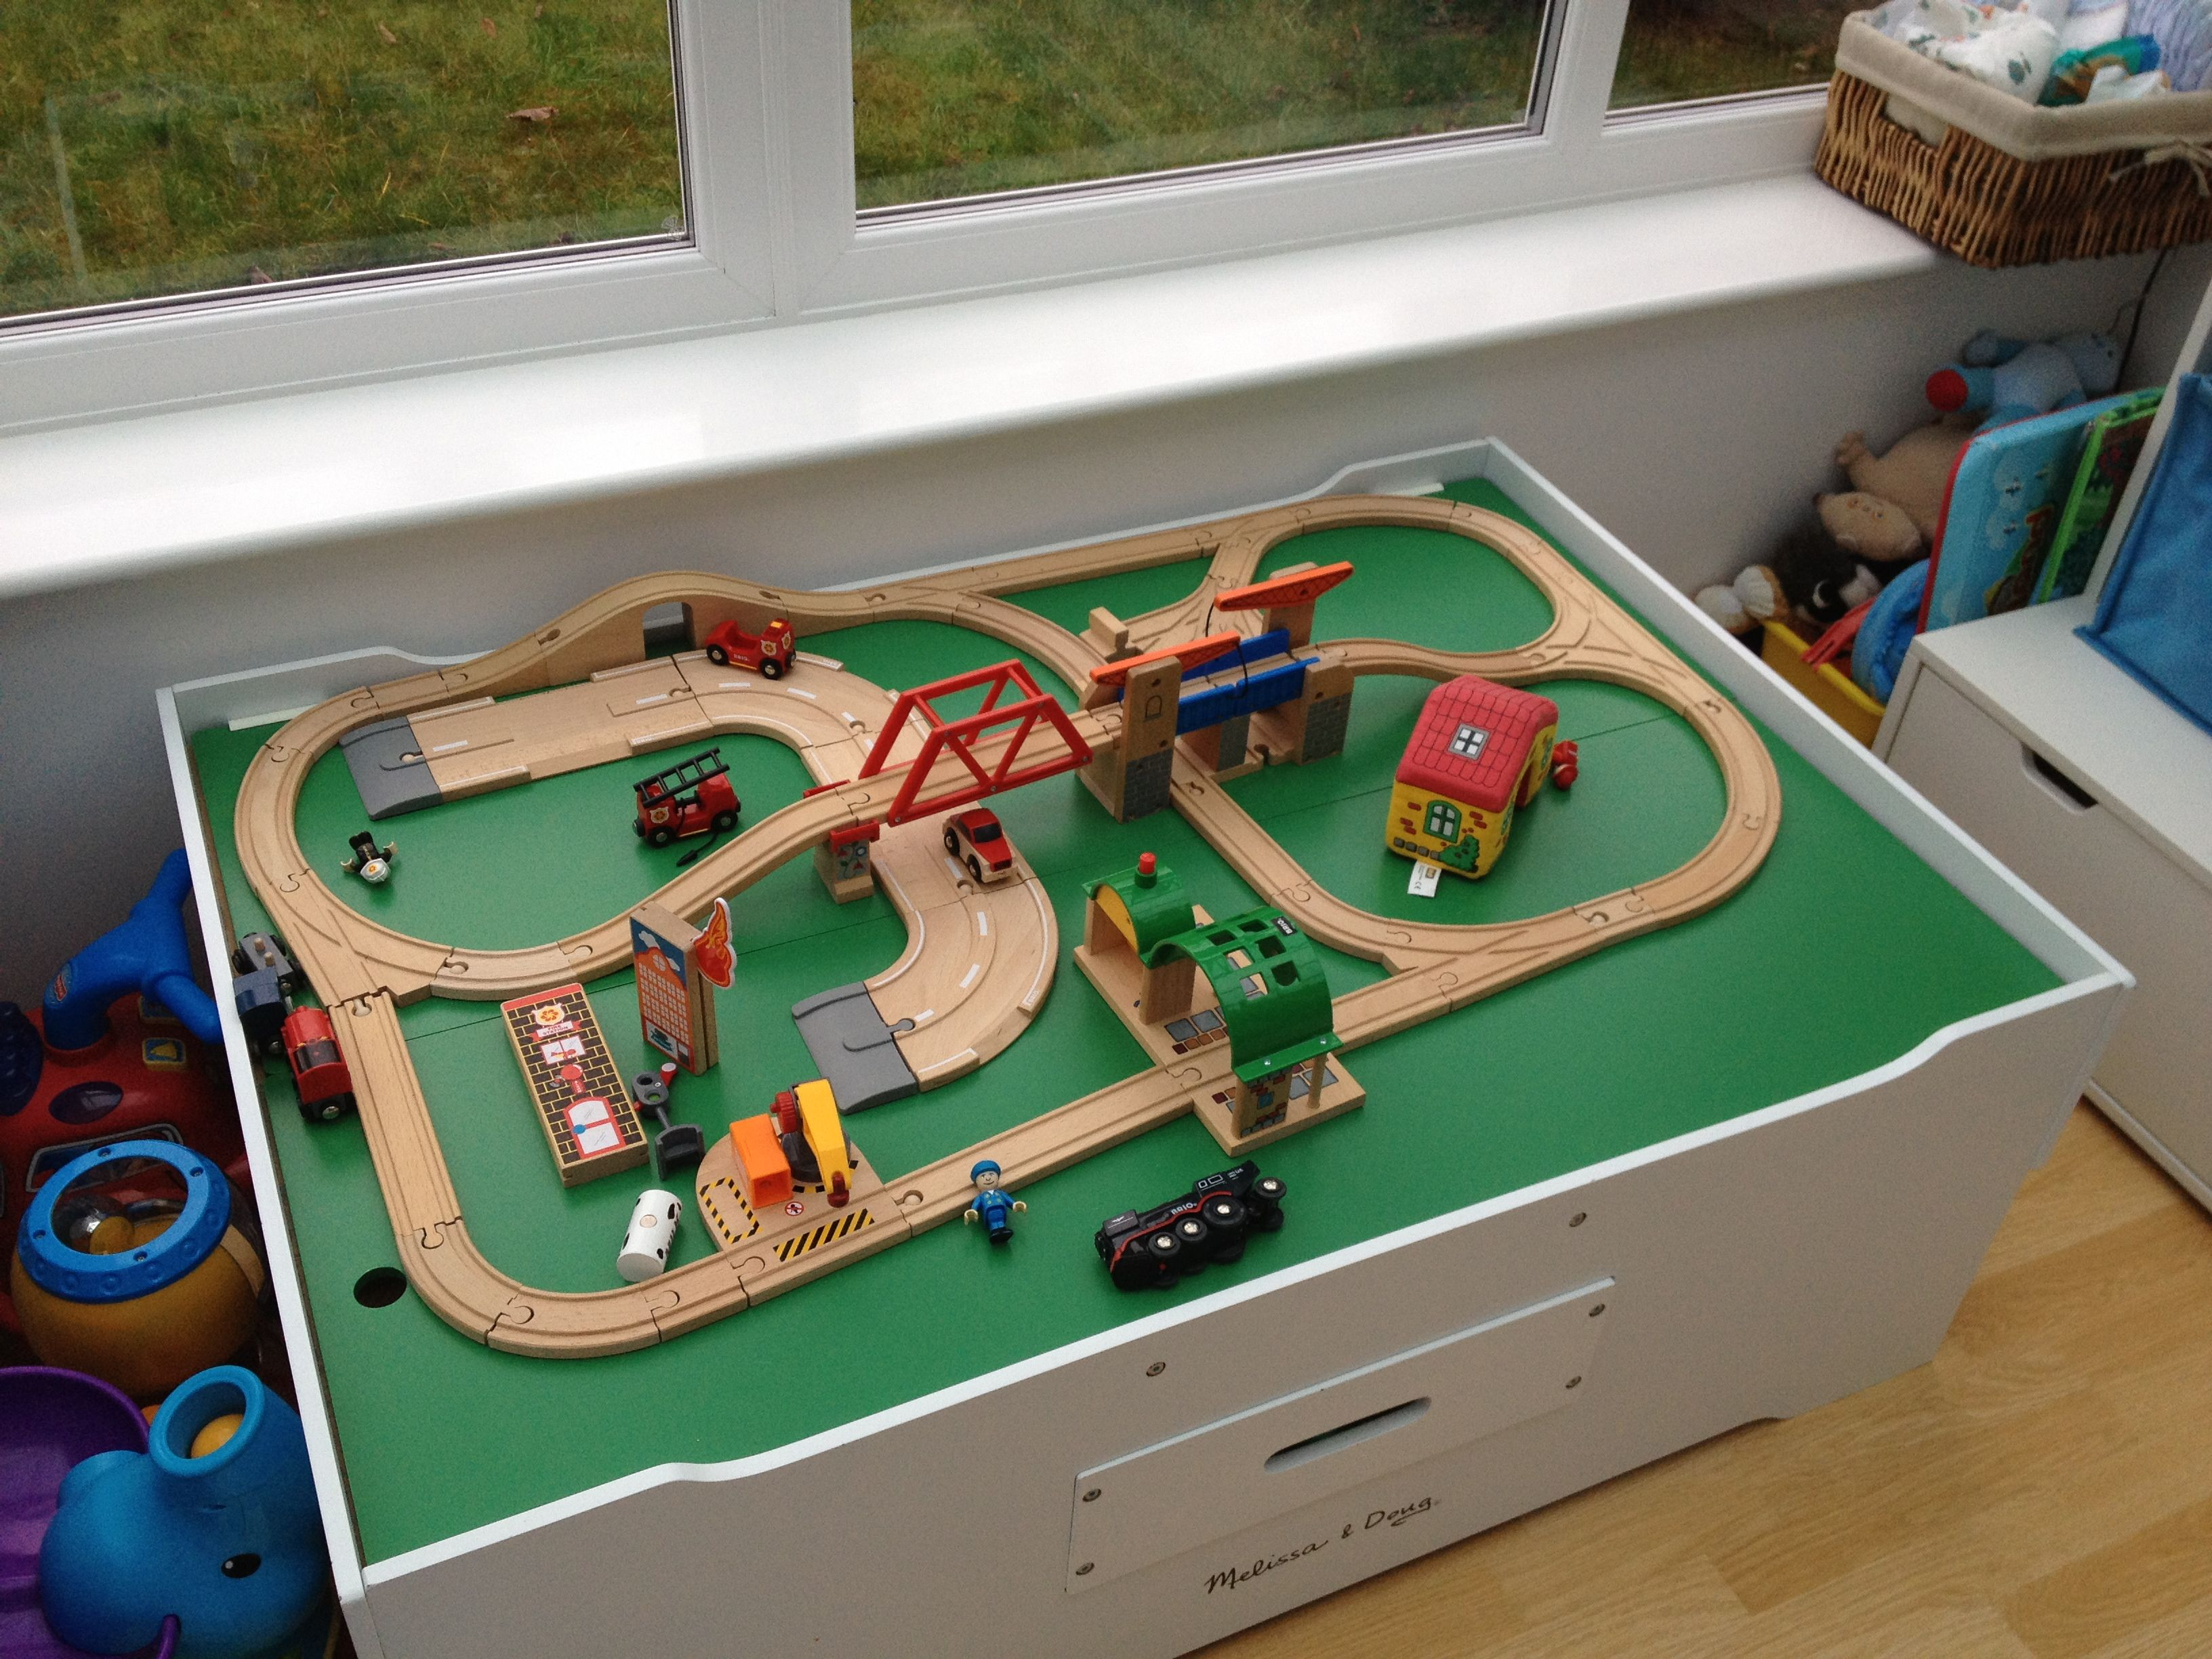 Theres a fire in a building by the side of the wooden train set